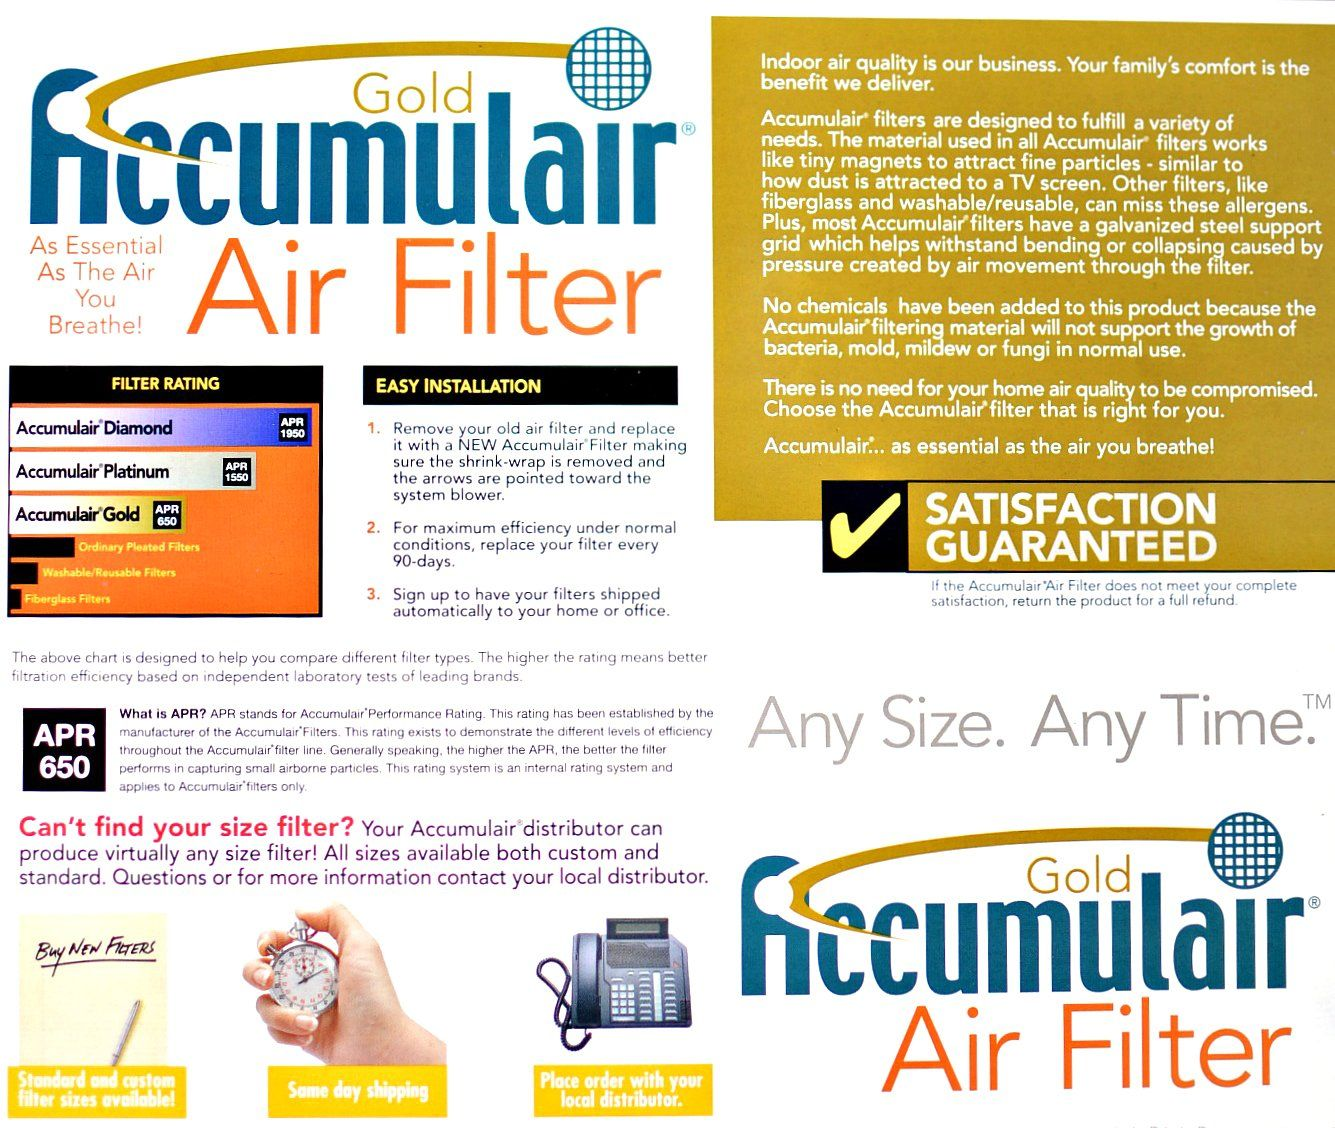 Accumulair Gold 20x36x0.5 Actual Size MERV 8 Air Filter